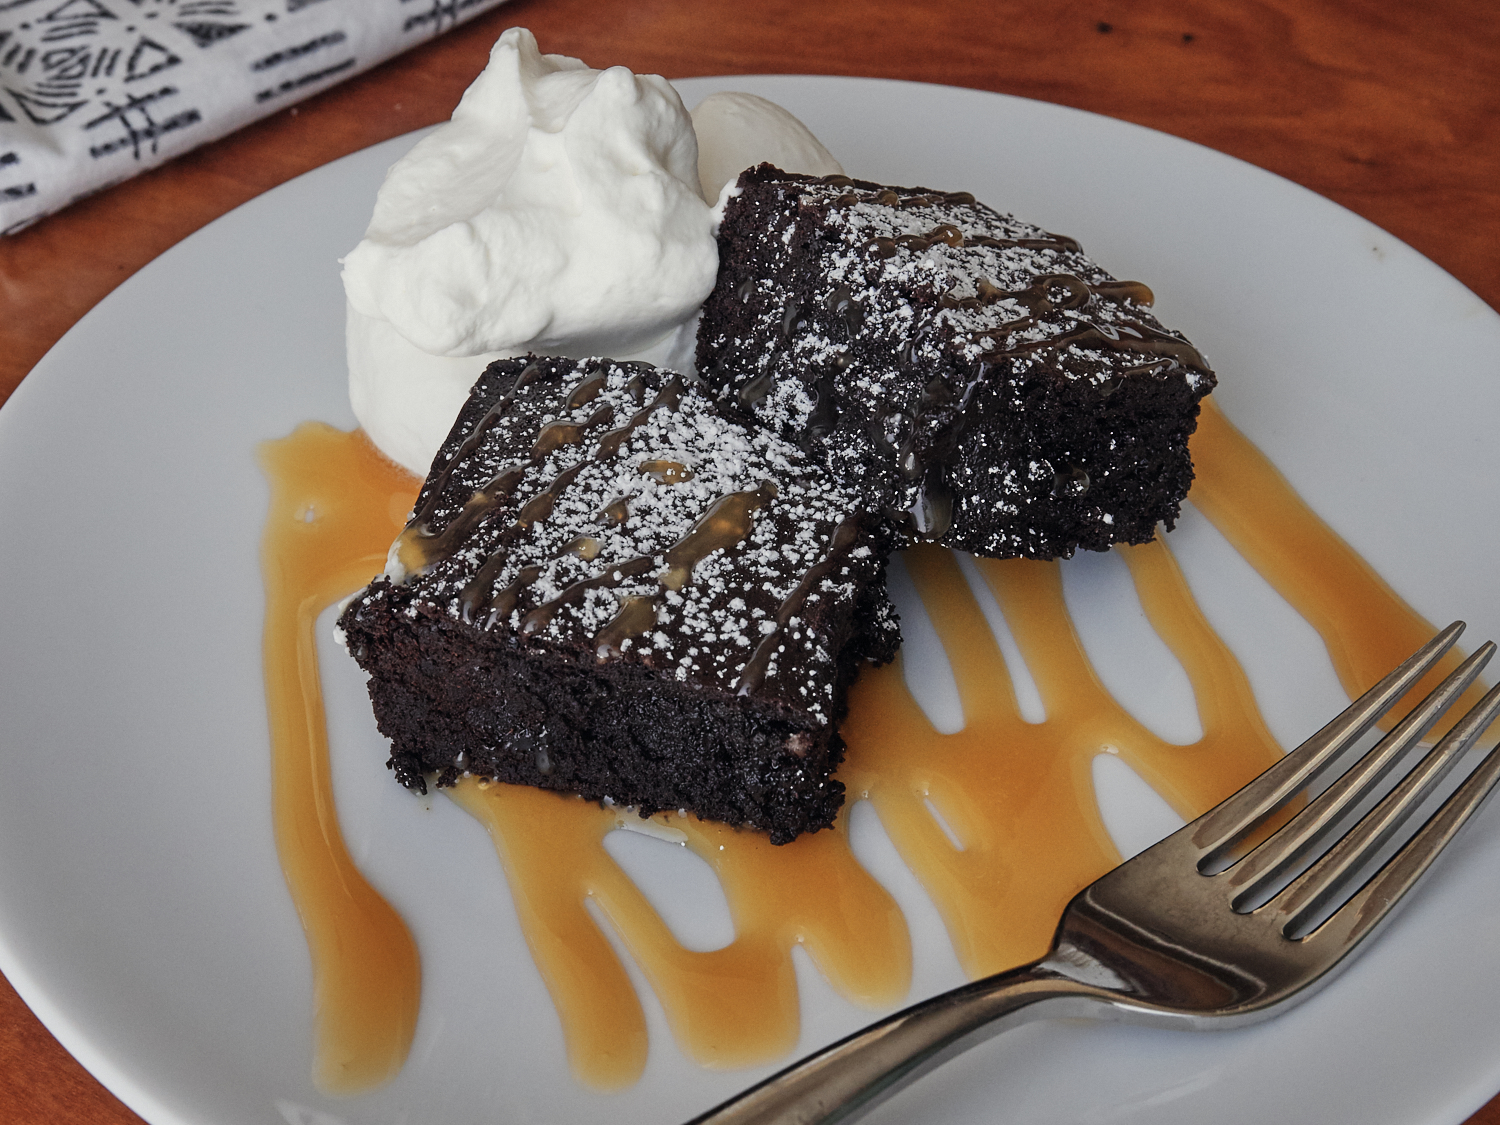 Serving Suggestion: Brownies, a sprinkle of powdered sugar, caramel sauce & whipped cream.